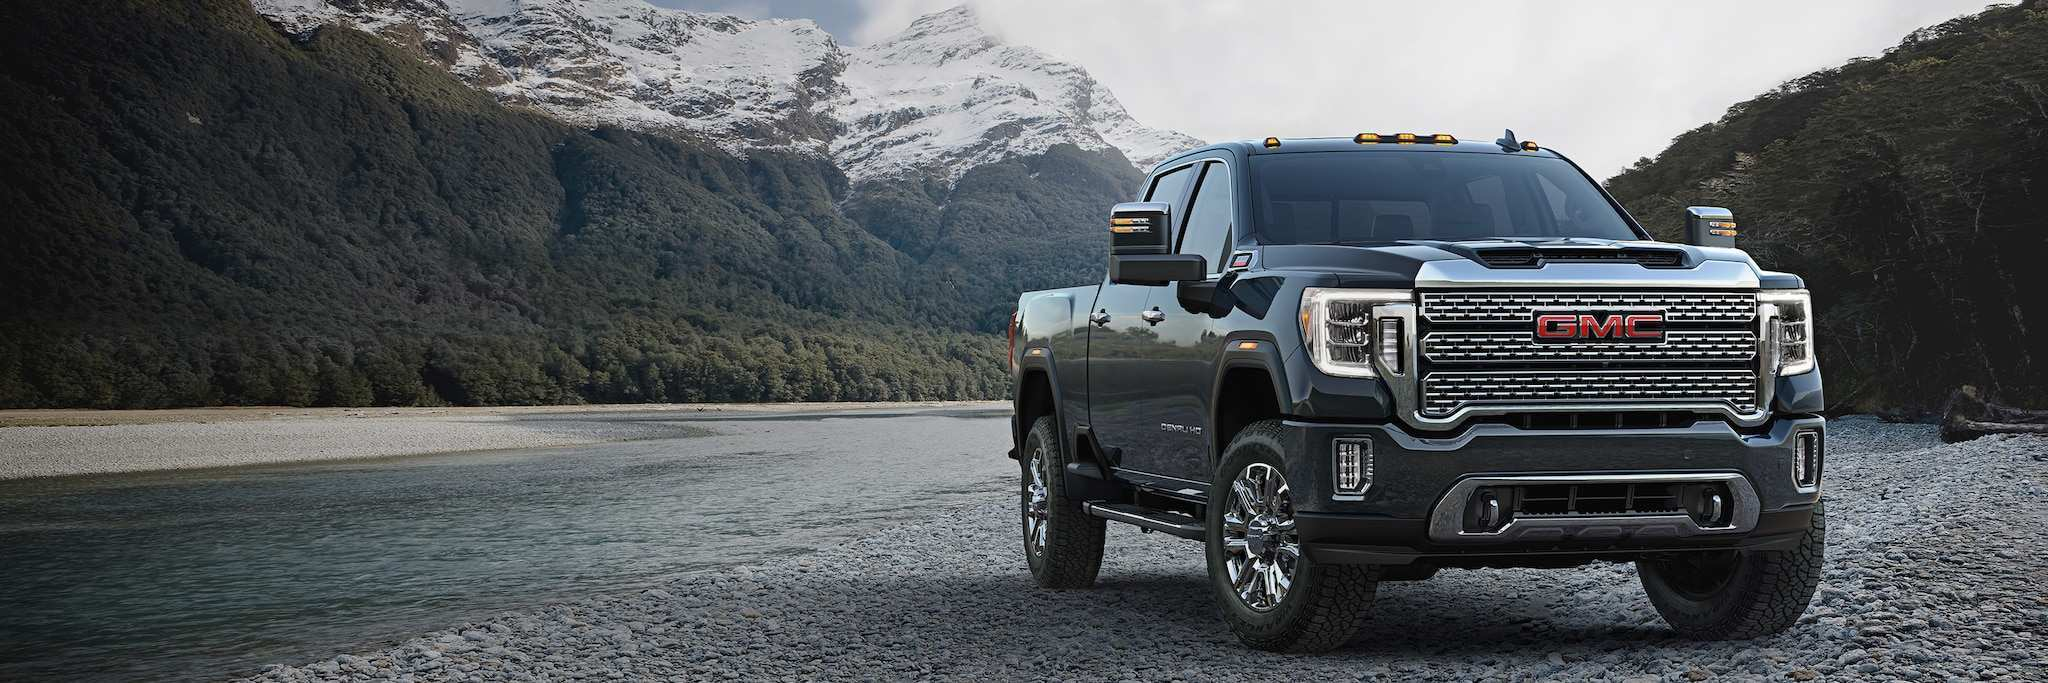 15 New When Does The 2020 Gmc Sierra Come Out Model